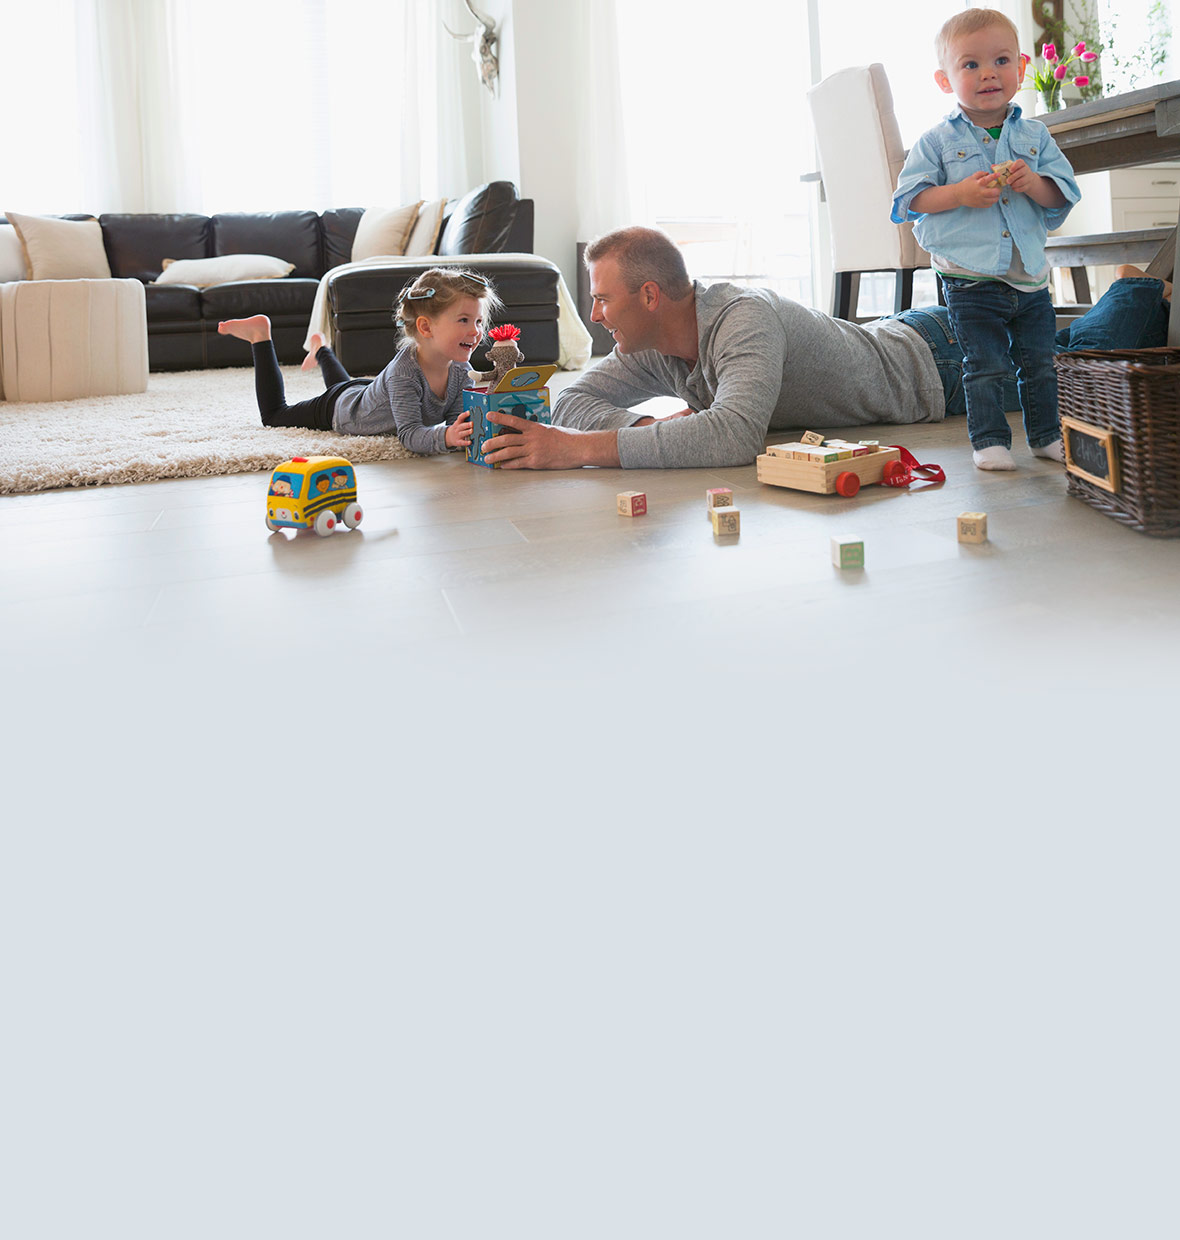 Father and children playing